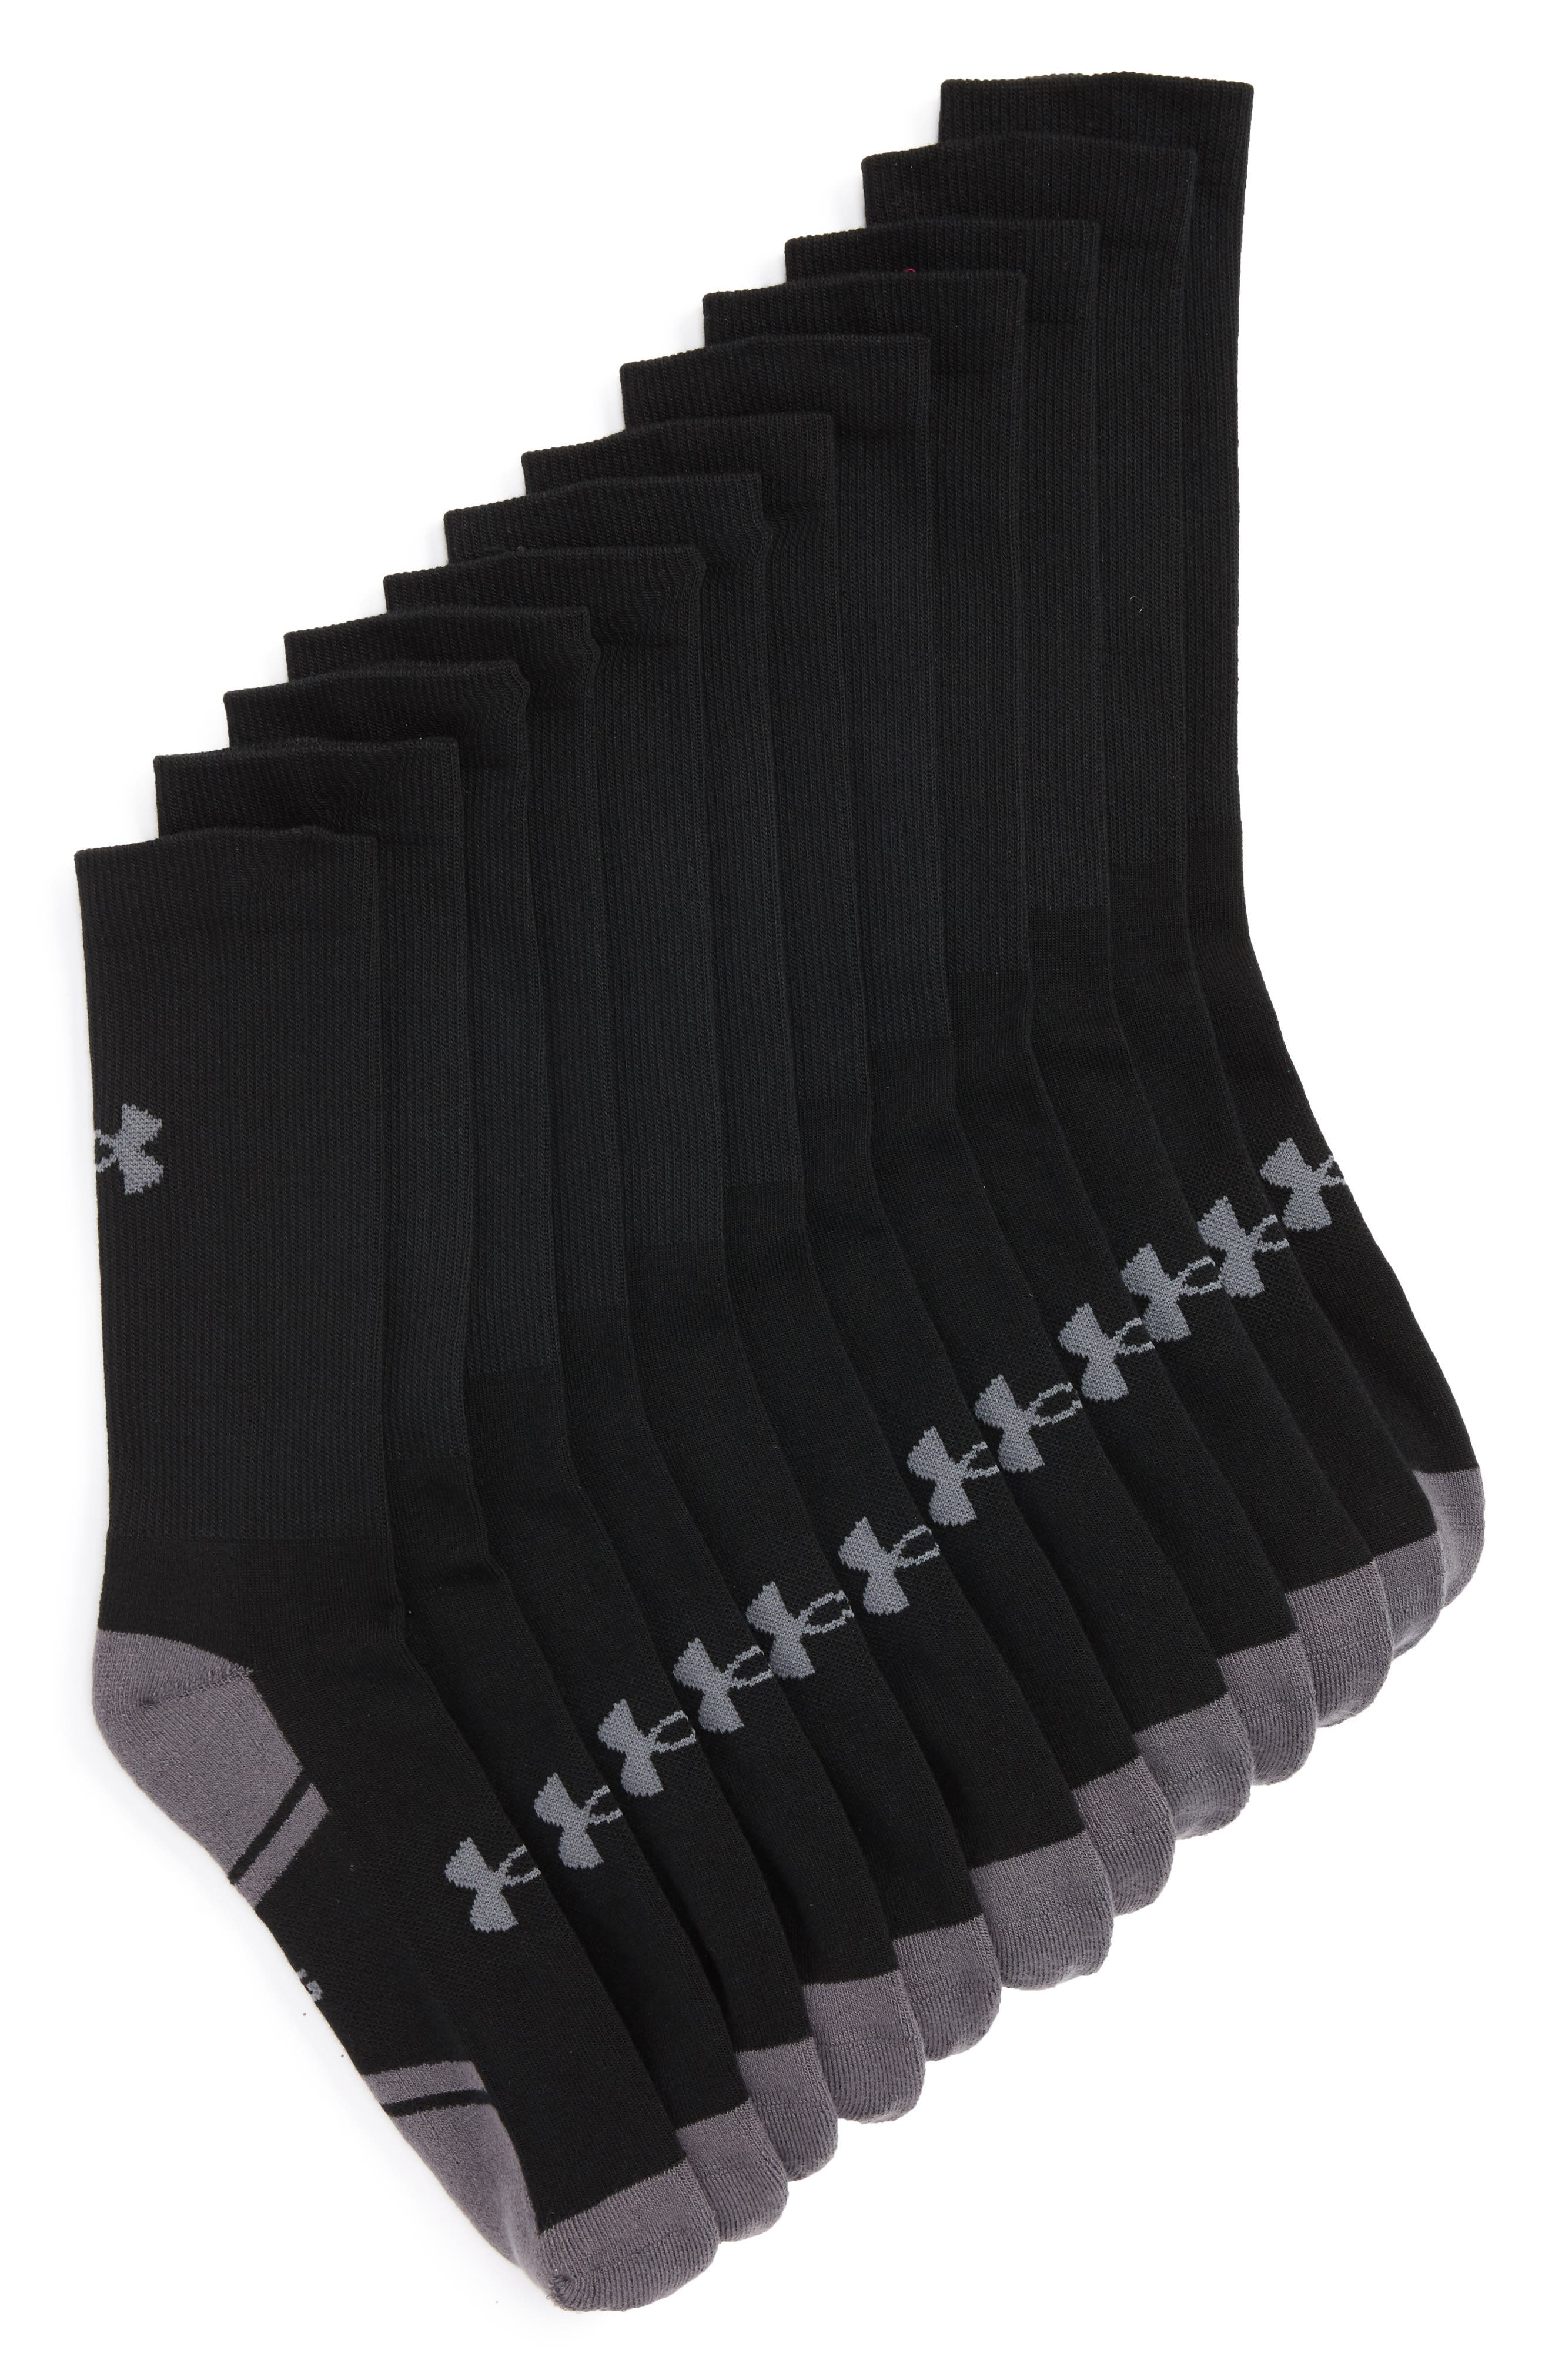 Under Armour Resistor 3.0 6-Pack Crew Socks